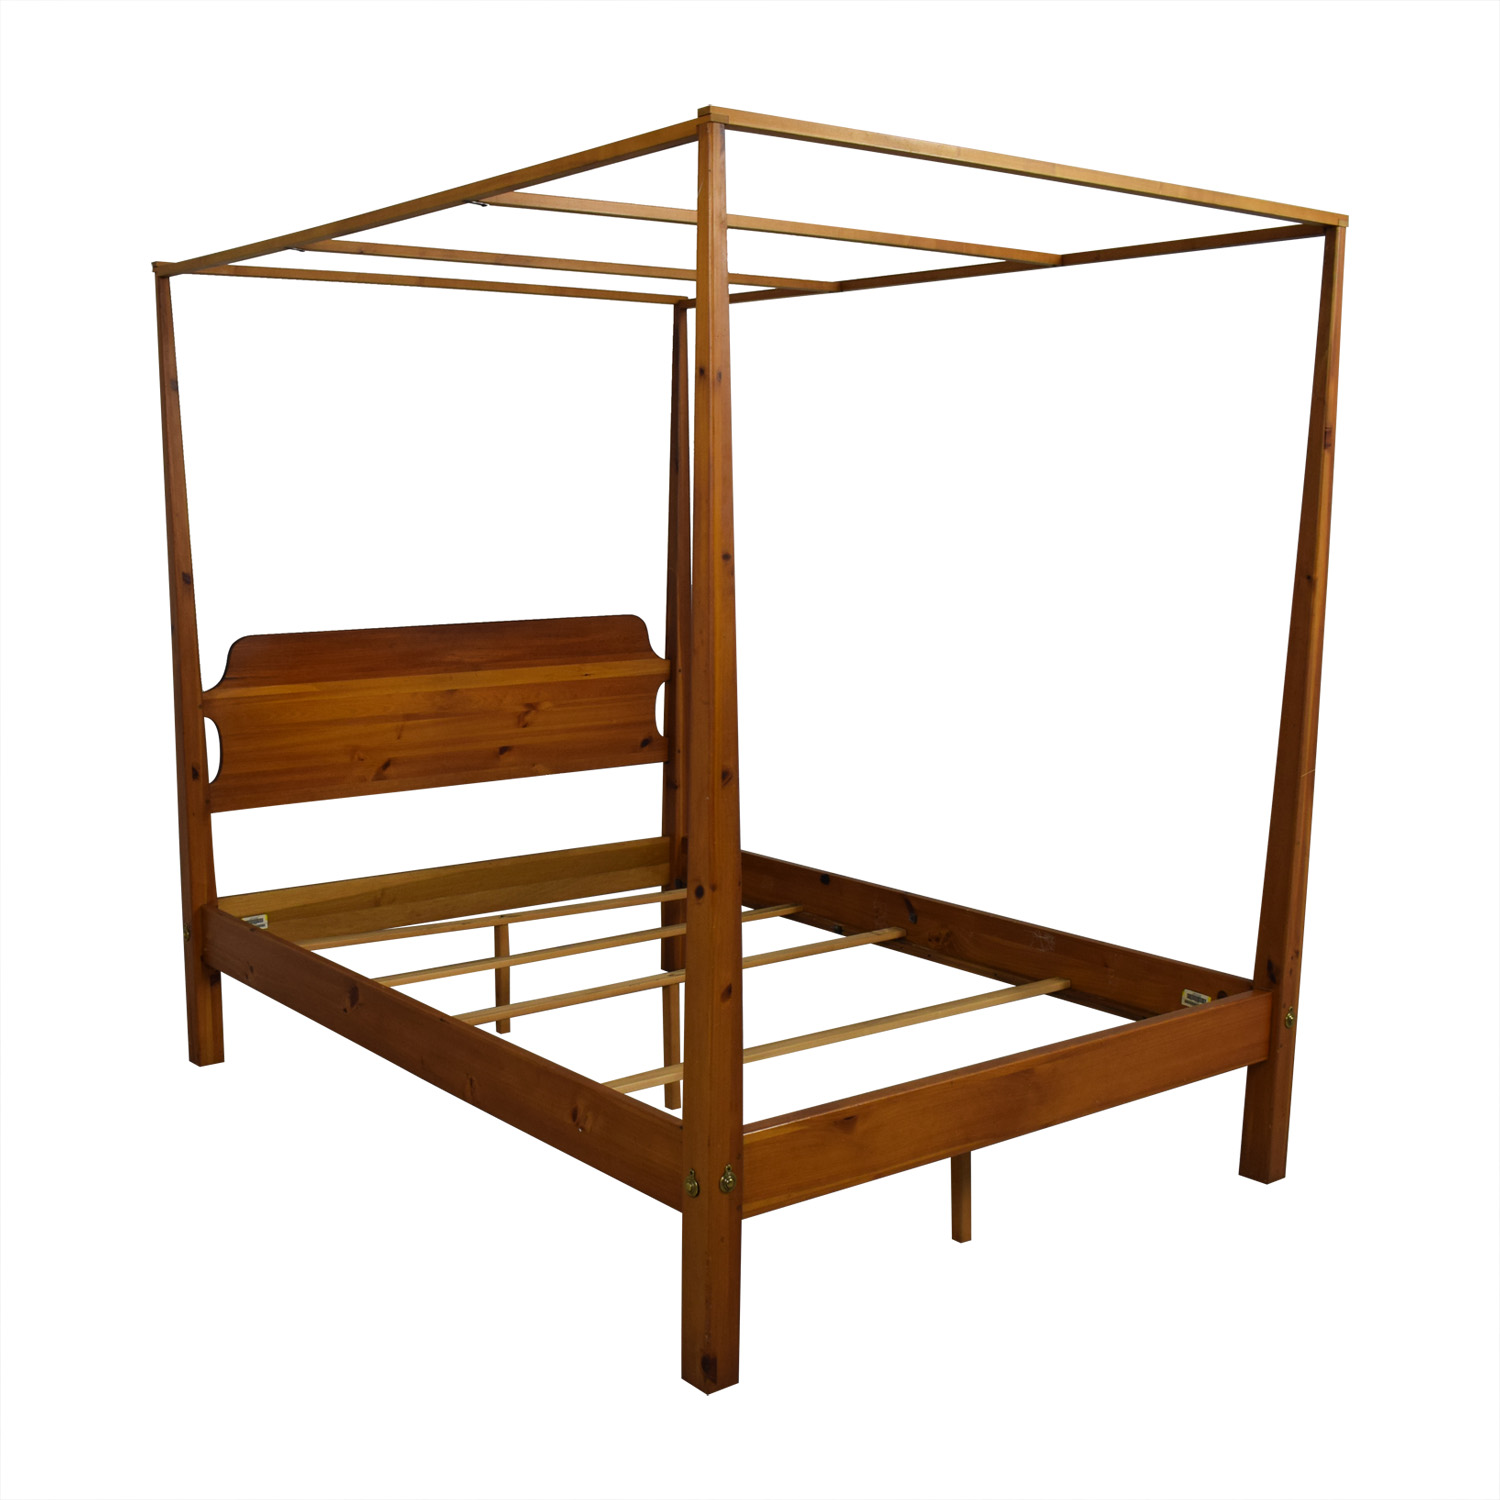 Ethan Allen Ethan Allen New Impressions Canopy Bed Frame price